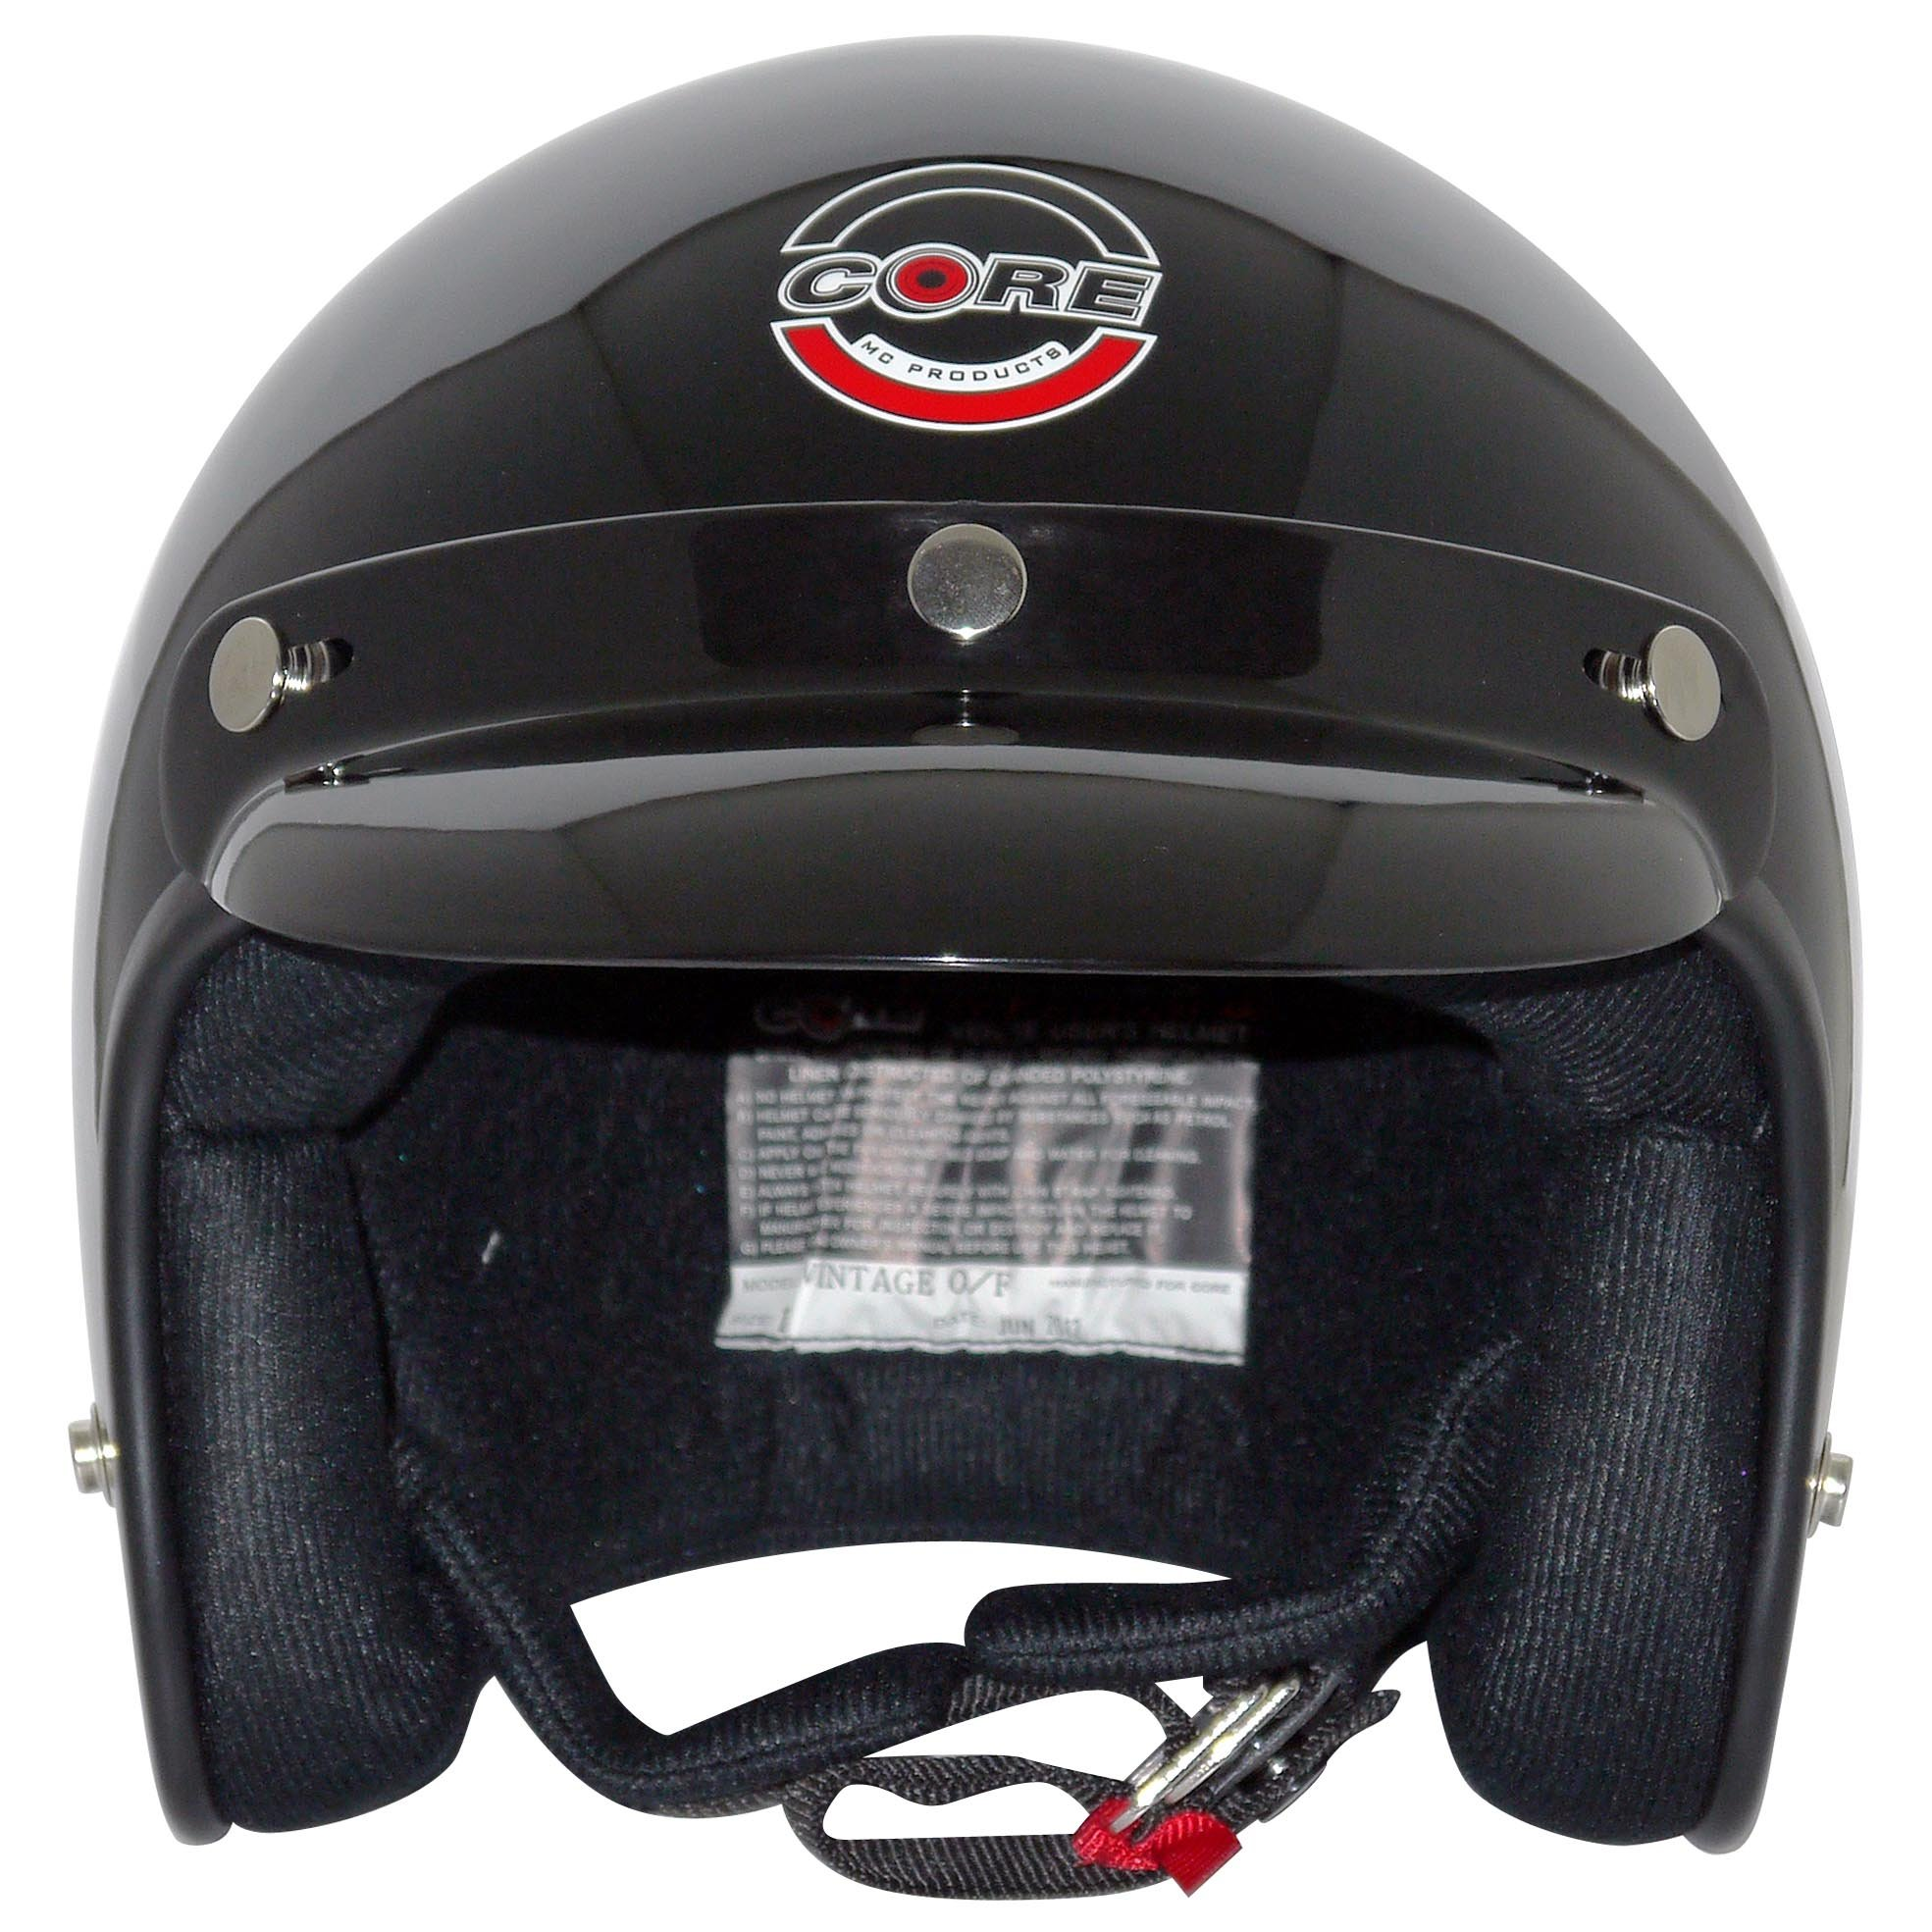 Core Vintage Open Face Helmet (Gloss Black, X-Small) by Core (Image #2)